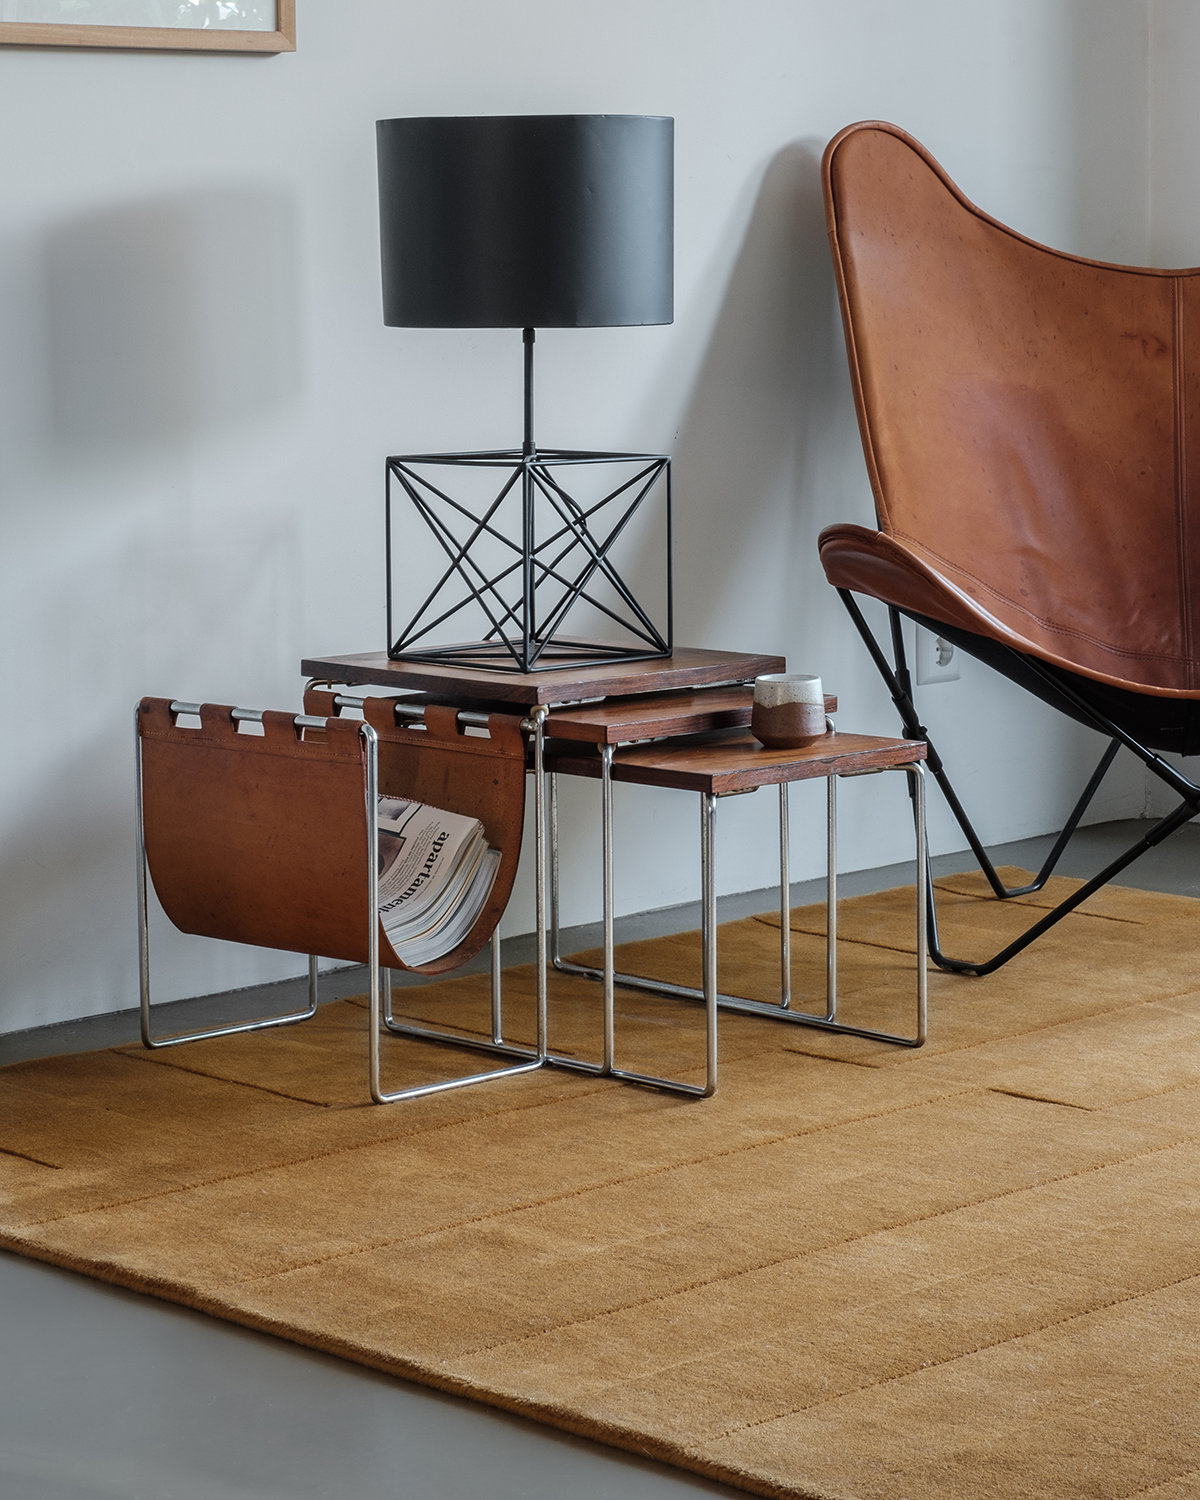 The Lux 2 in Leo shown in a living room together with a leather bar chair and a steel and wood side table.